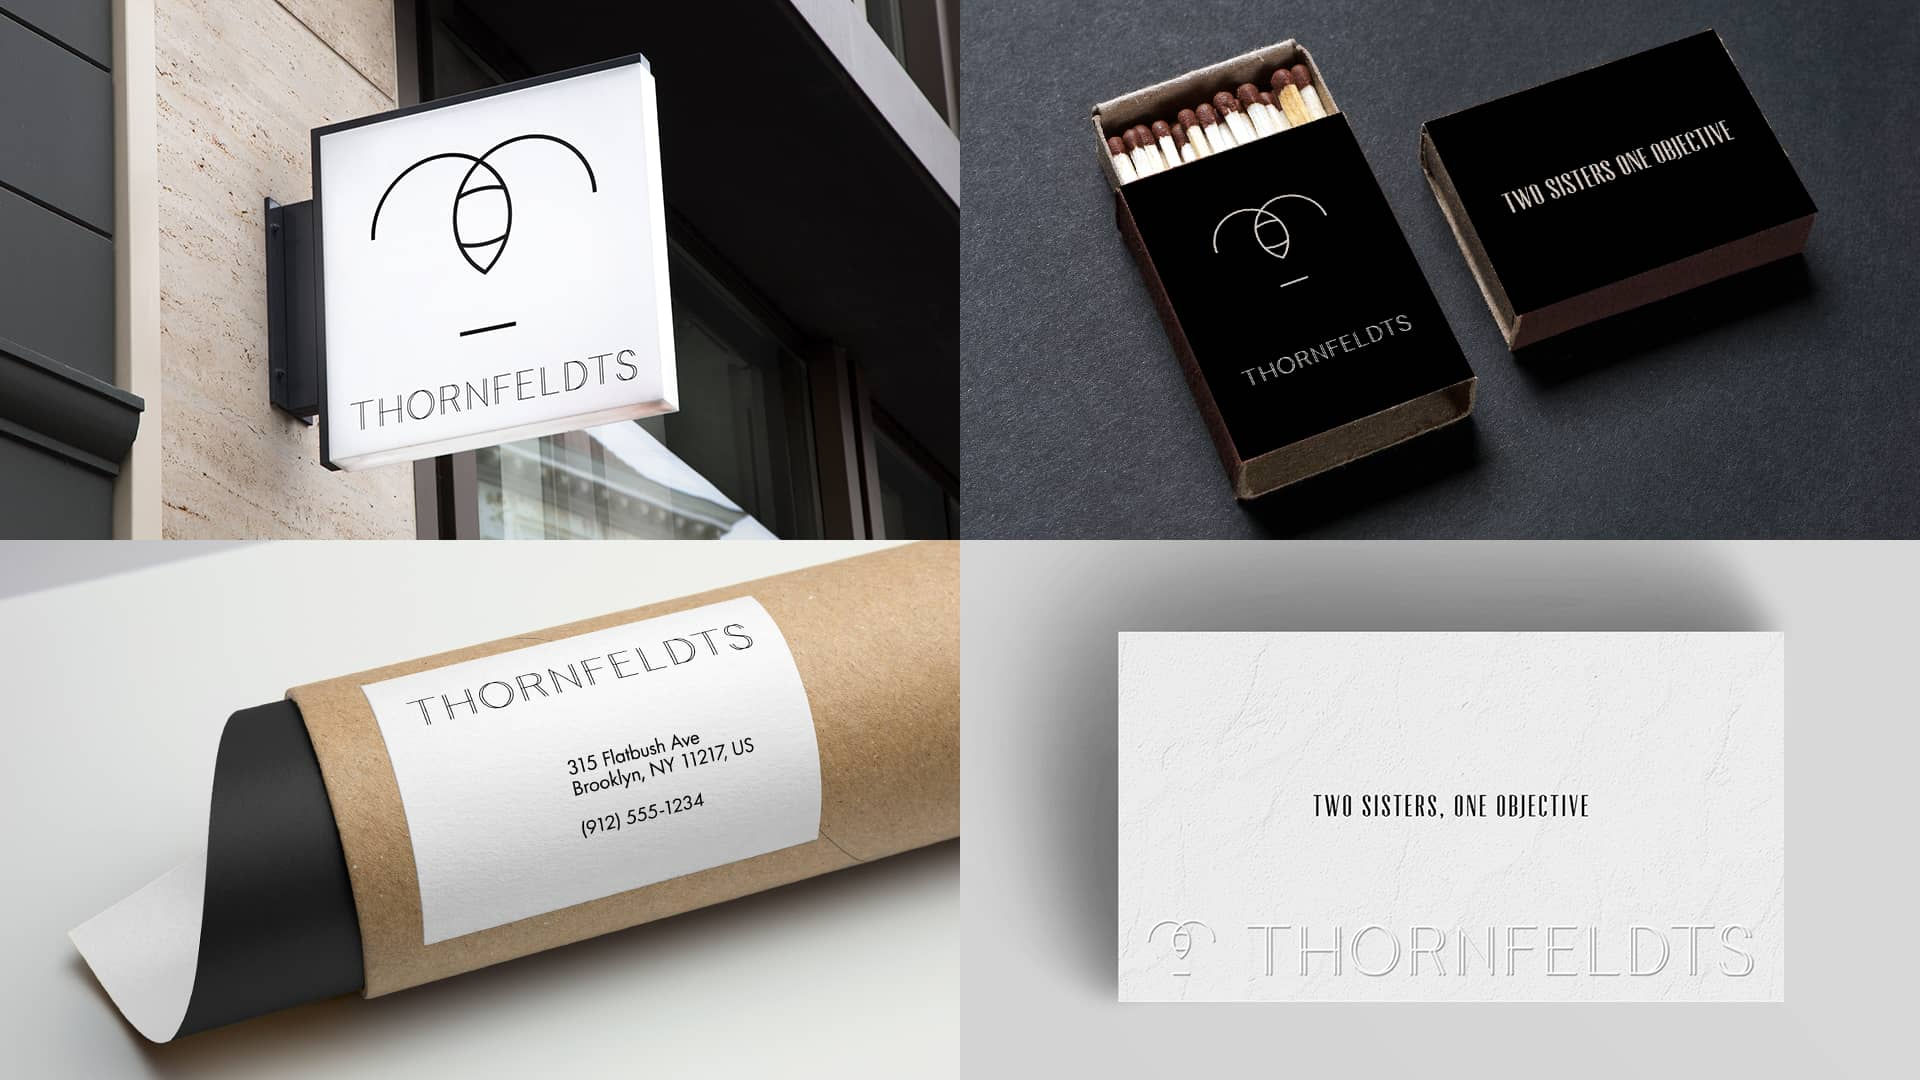 Maria and louise thornfeldt branding elements